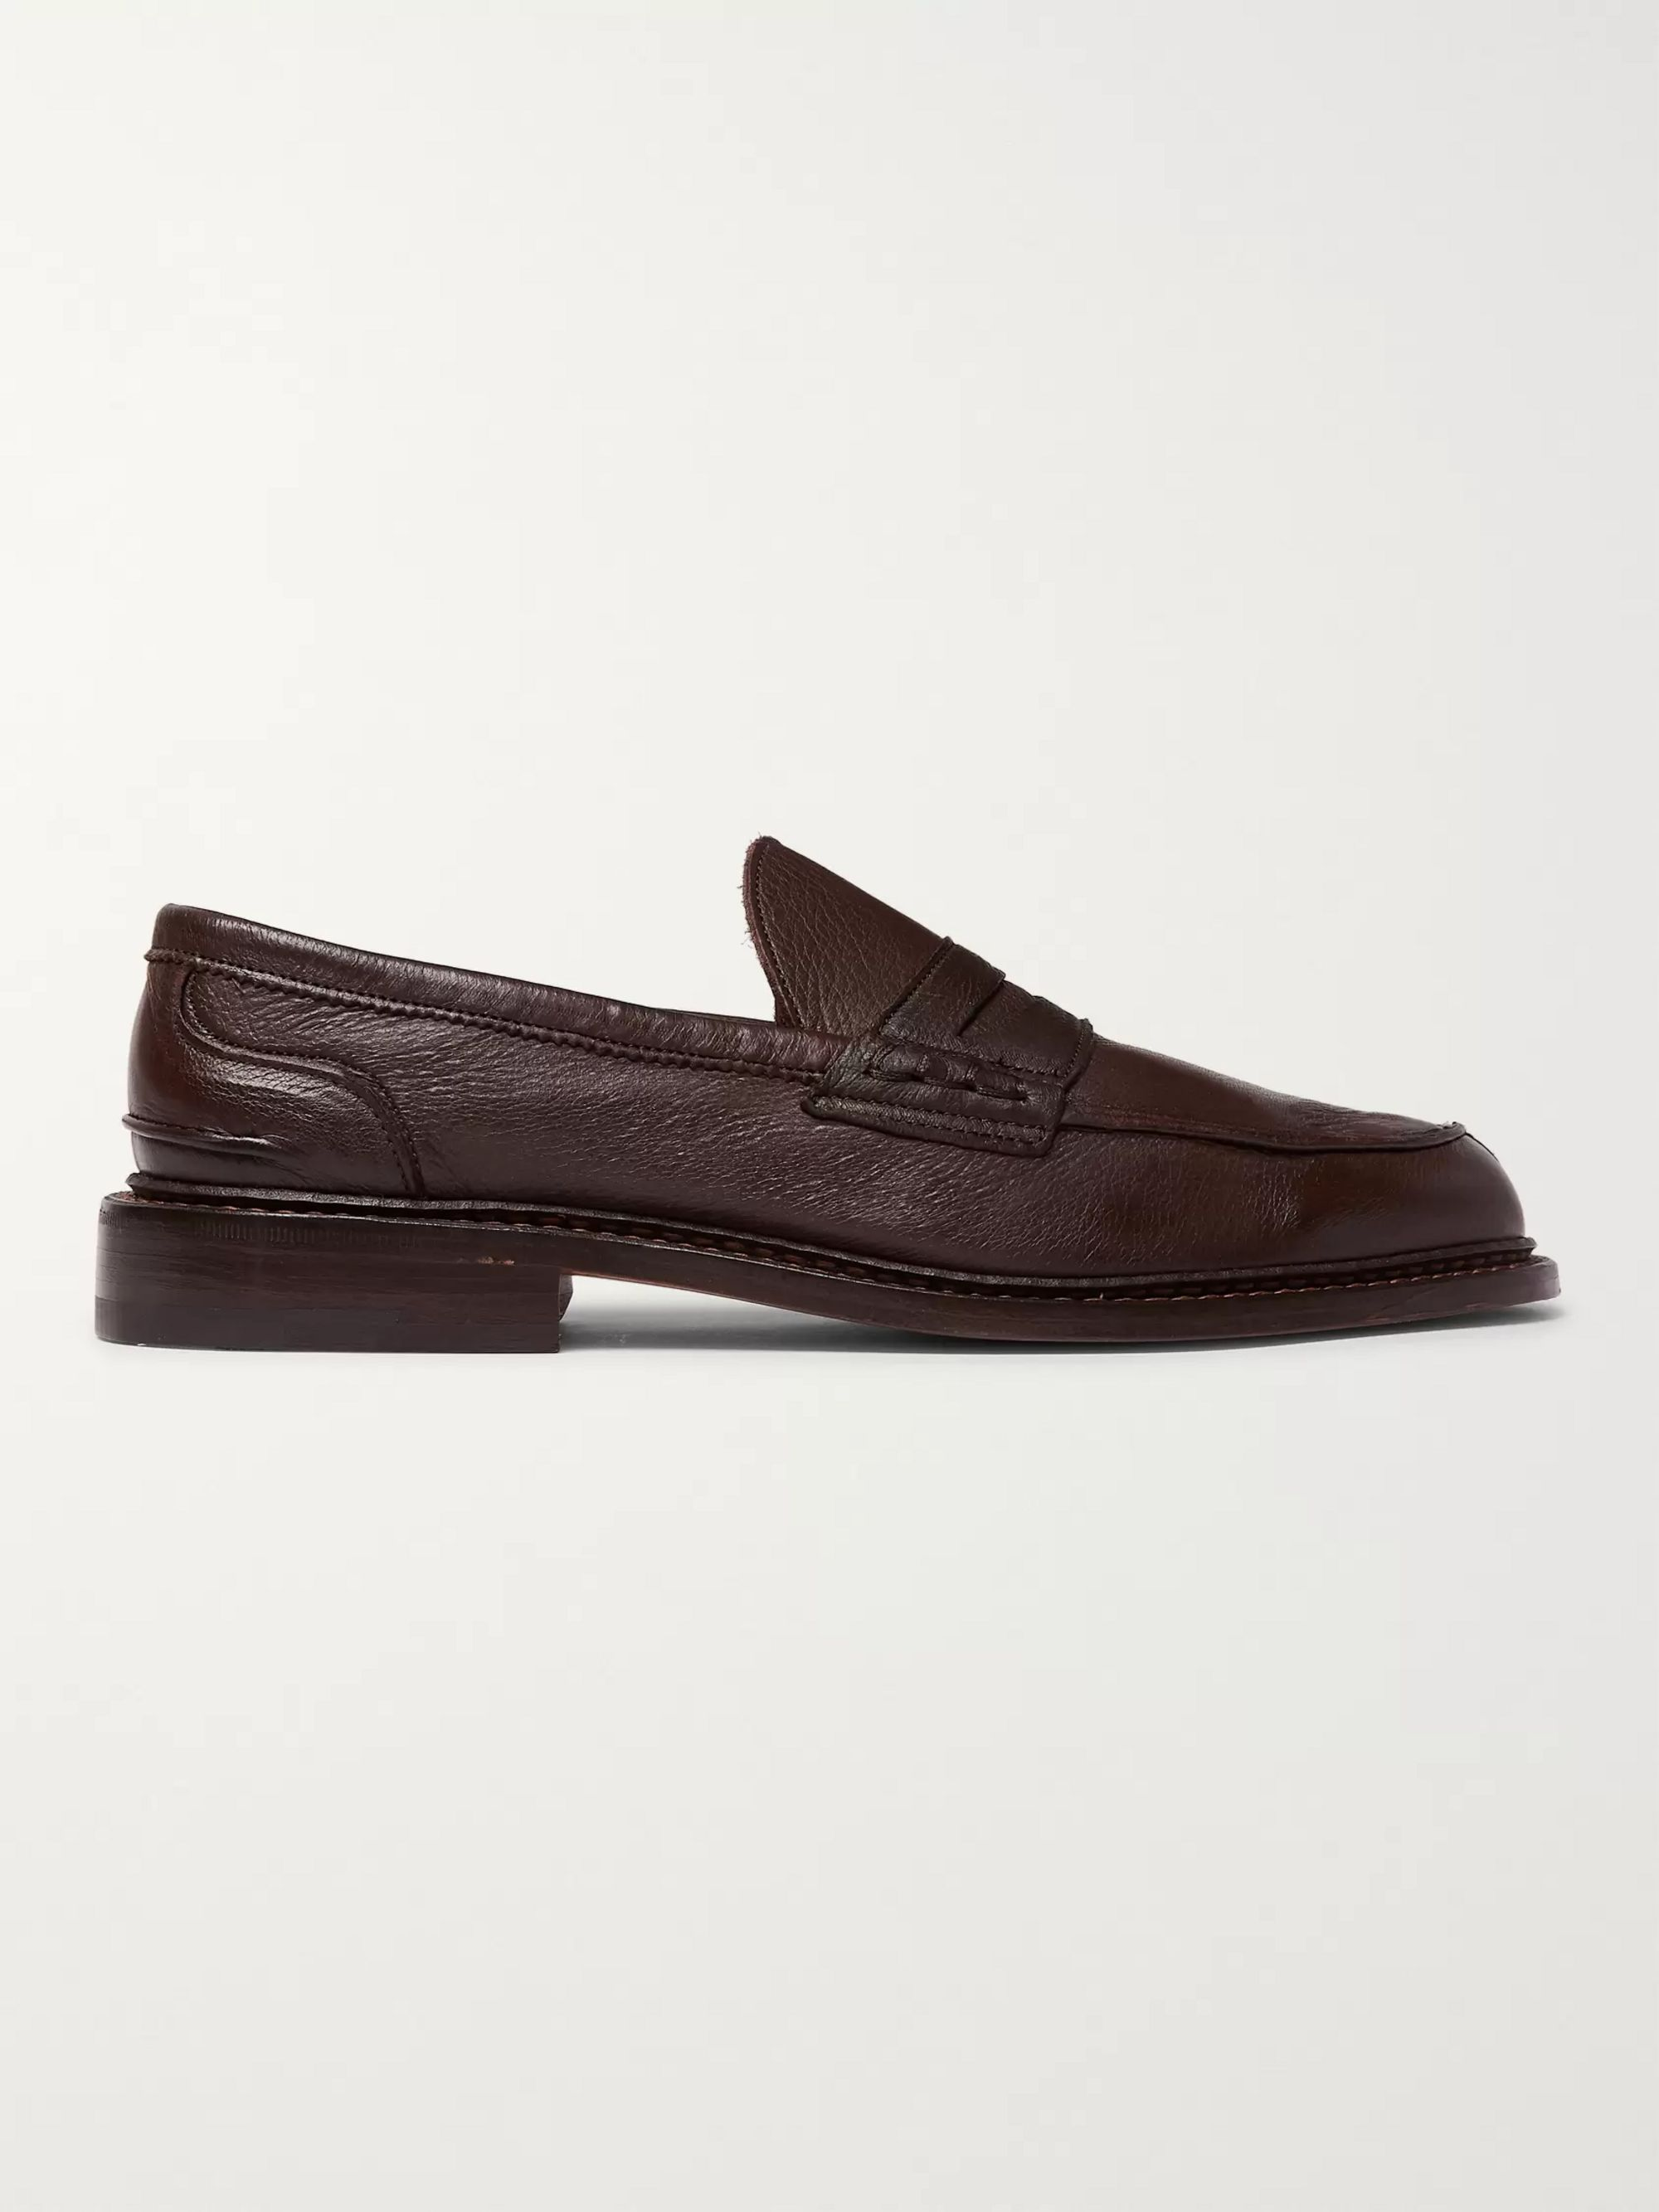 Tricker's Adam Full-Grain Leather Penny Loafers